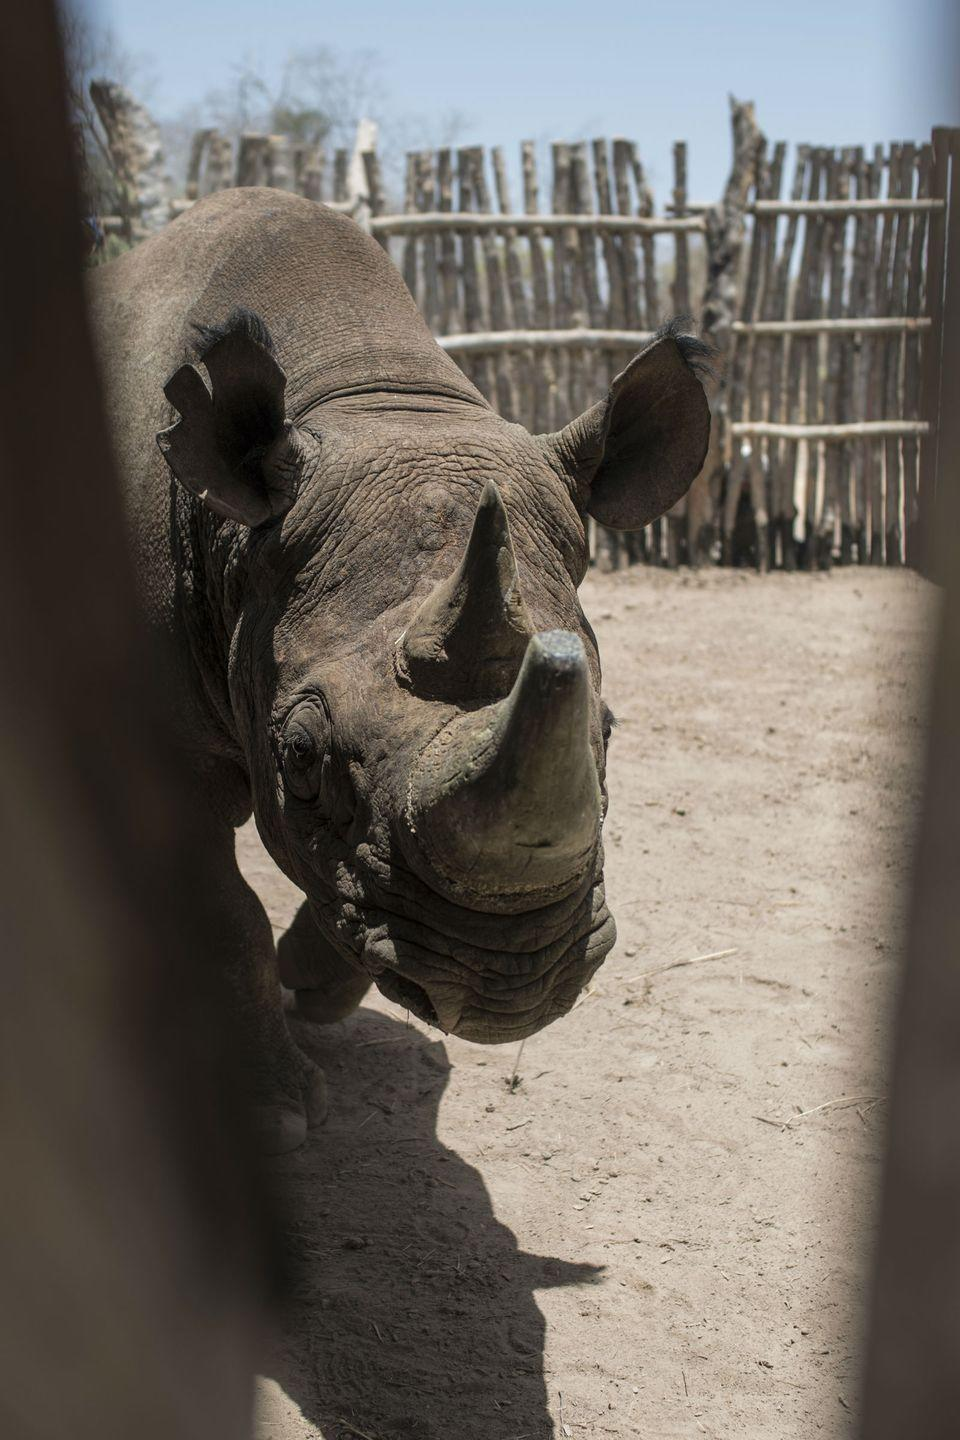 "<p><strong>Scientific classification:</strong> <em>Diceros bicornis</em></p><p><strong>Location:</strong> Eastern and Southern Africa</p><p>Bit by bit, the black rhino is disappearing from the world. Most recently, the western black rhino was declared extinct in 2011. Only one subspecies—the south-western black rhinoceros—is managing to hold on beyond the threat of being considered endangered. The International Union for Conservation of Nature considers it ""near threatened.""</p><p>The entire wider species has <a href=""https://www.worldwildlife.org/species/black-rhino"" rel=""nofollow noopener"" target=""_blank"" data-ylk=""slk:fallen in population by 98 percent"" class=""link rapid-noclick-resp"">fallen in population by 98 percent</a> in just the last 60 years. Poaching represents one of the biggest threats to the survival of the rhino, as its horn is used in traditional folk medicine in China. Only 5,500 rhinos remain on the African continent, though there are concerted efforts to boost those numbers.<br></p>"